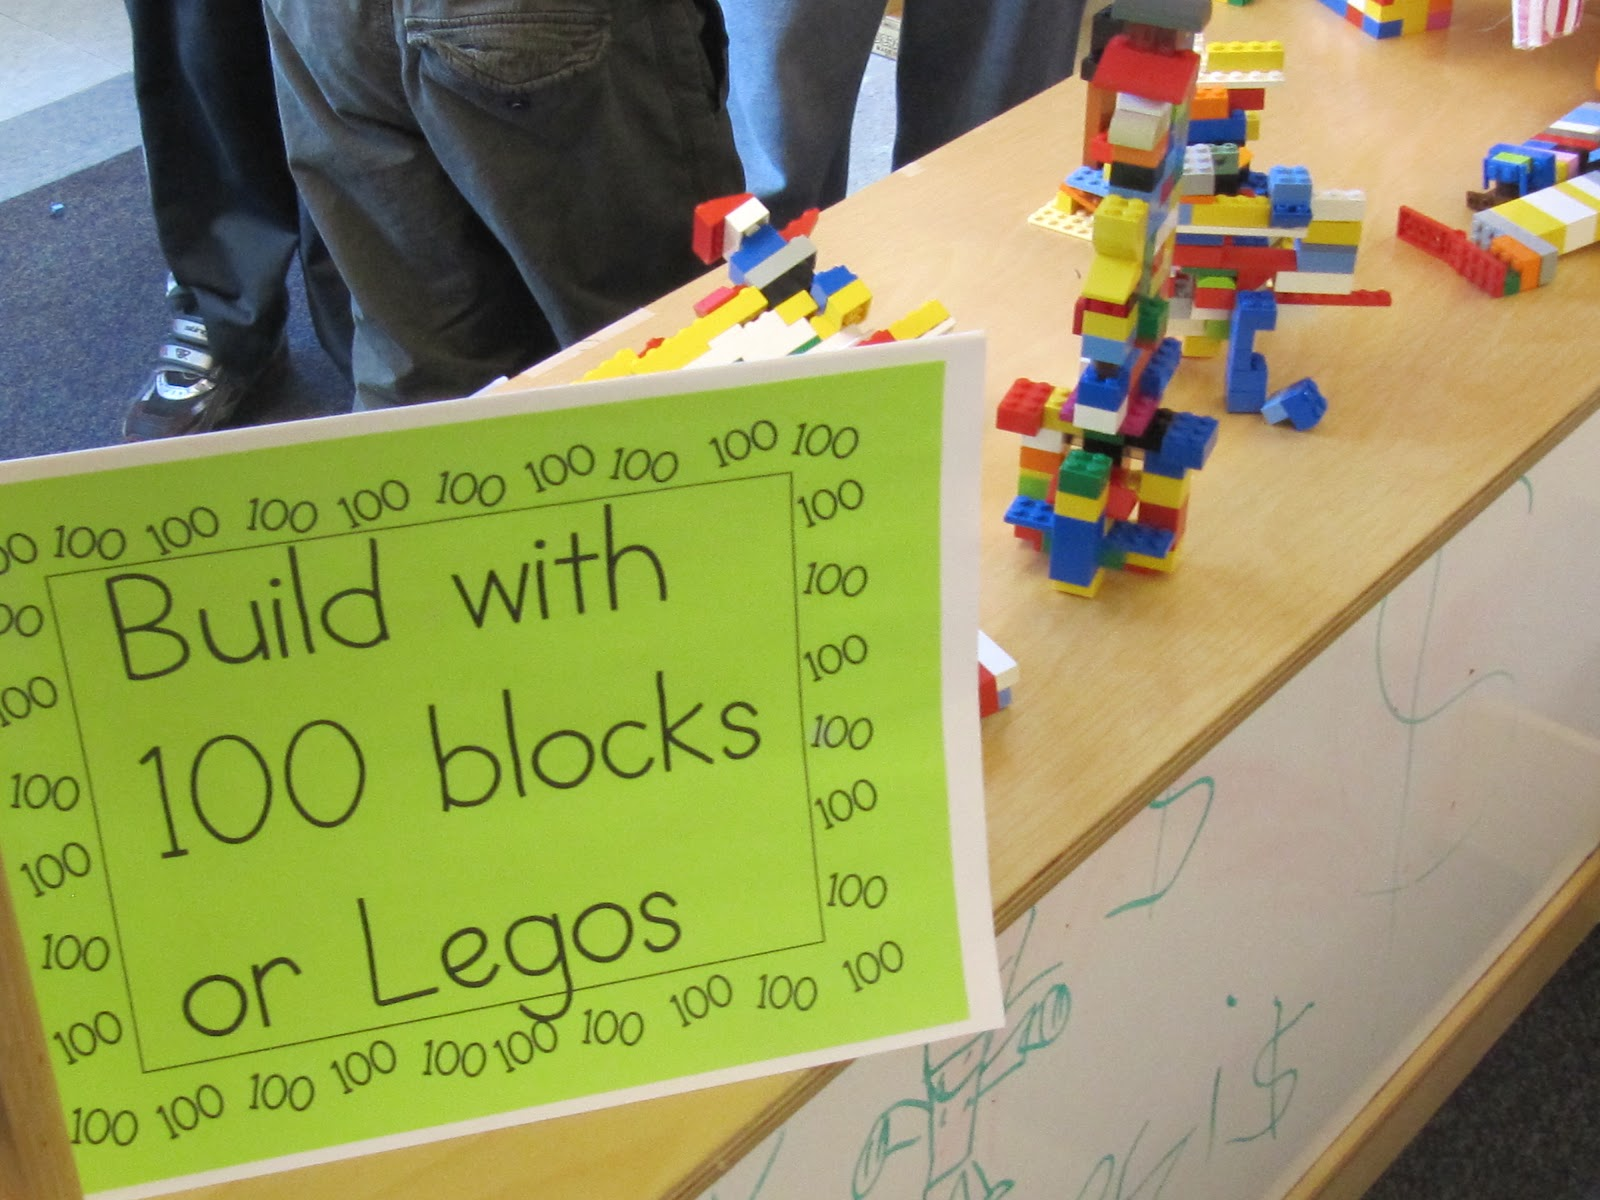 100 lego build makerspace